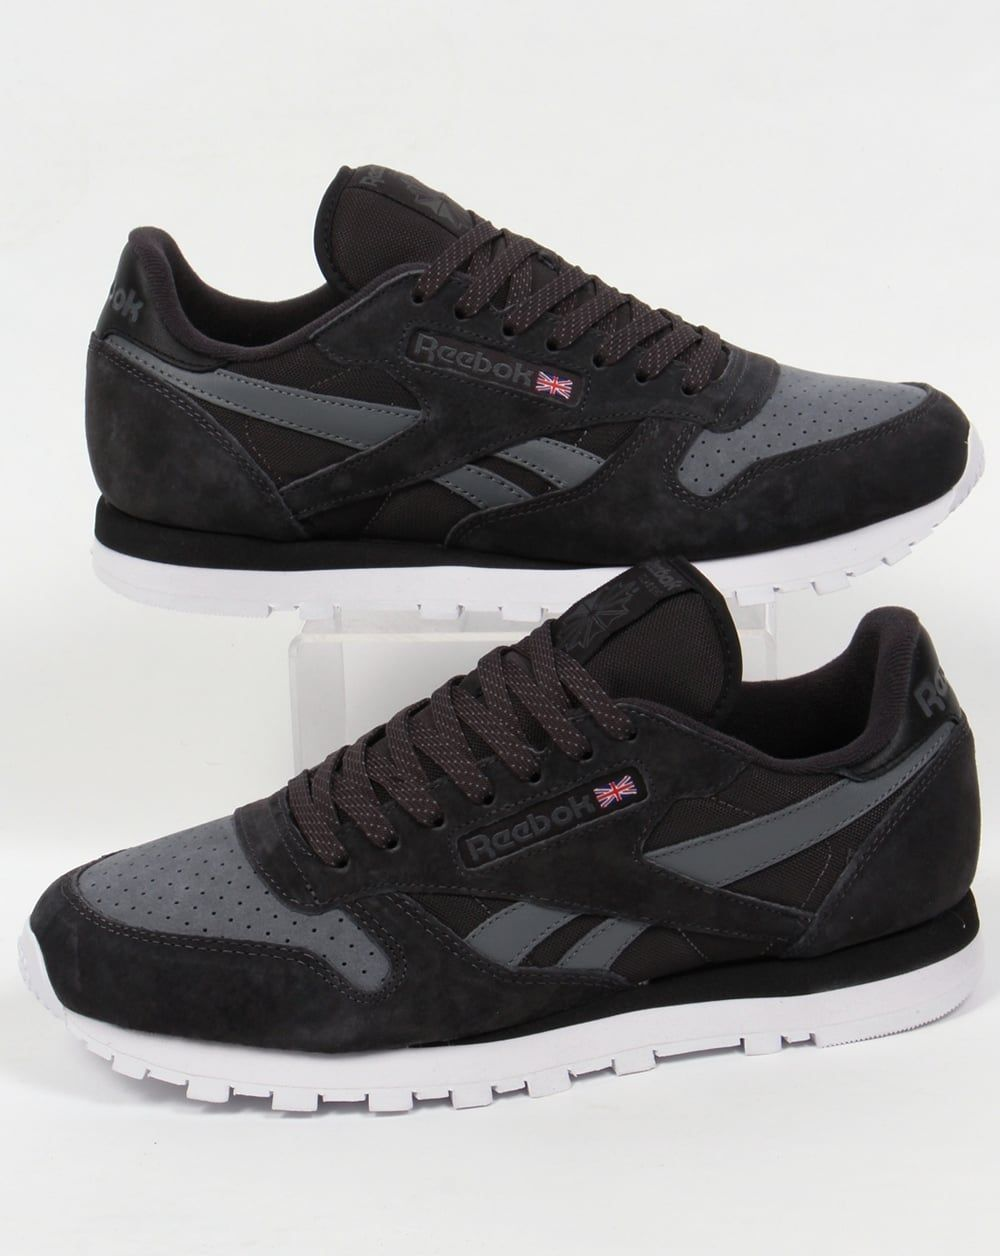 Reebok Classic Leather NP Trainers | Reebok classic leather